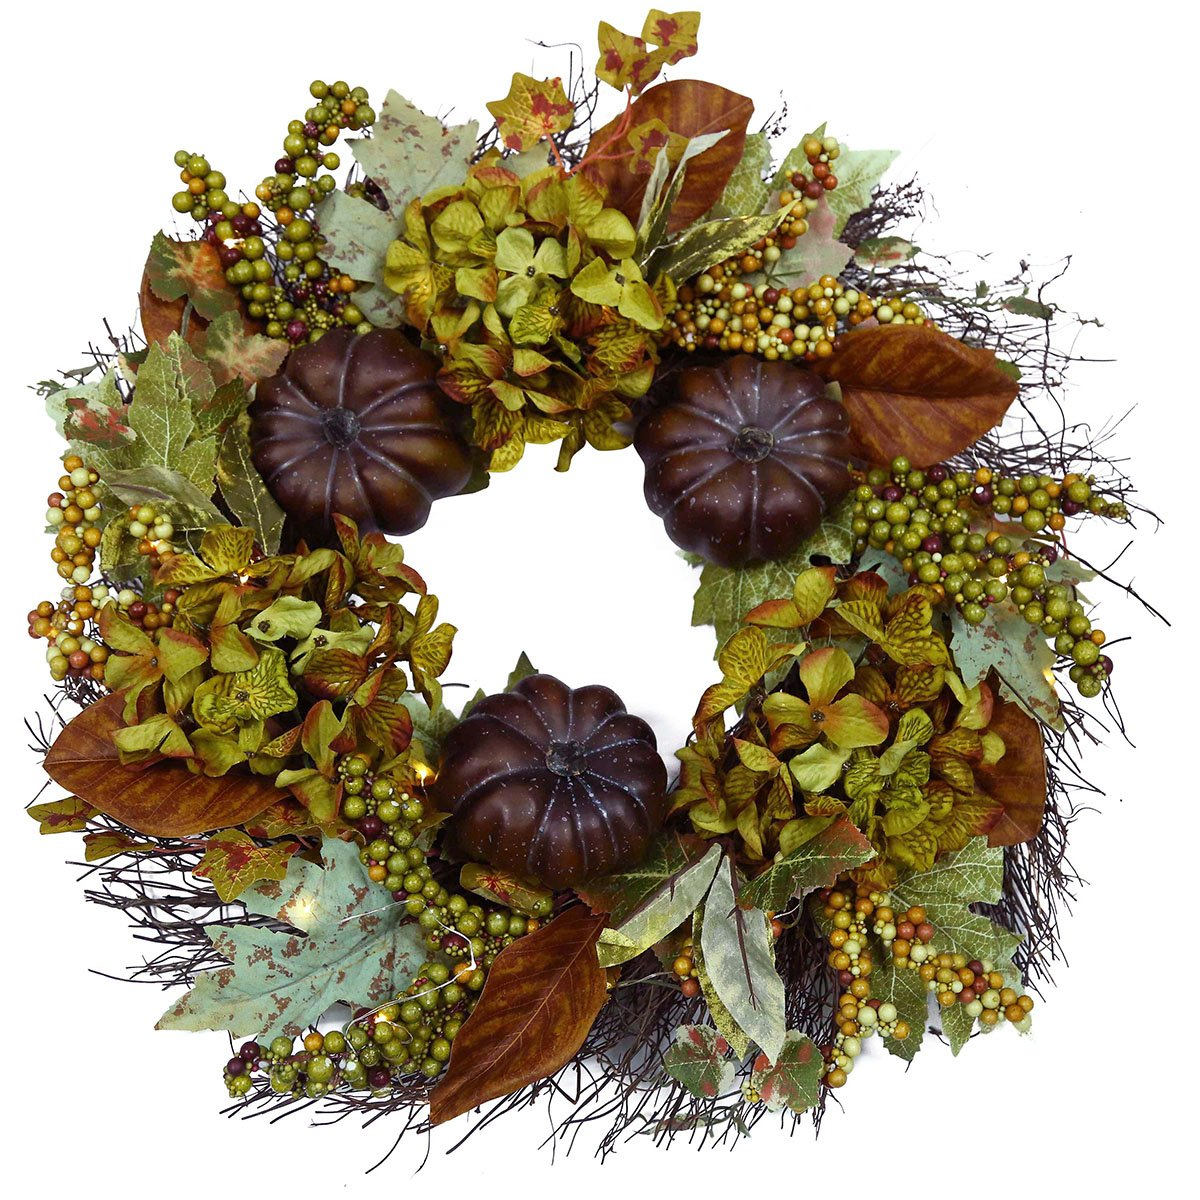 Kissfairy Artificial Outdoor Wreath With Lights 19 Inch Pumpkin Leaves Handcrafted Wreaths for Winter Home Decor, Green Front Door Wreath for Garden (Pumpkin Leaves 3)